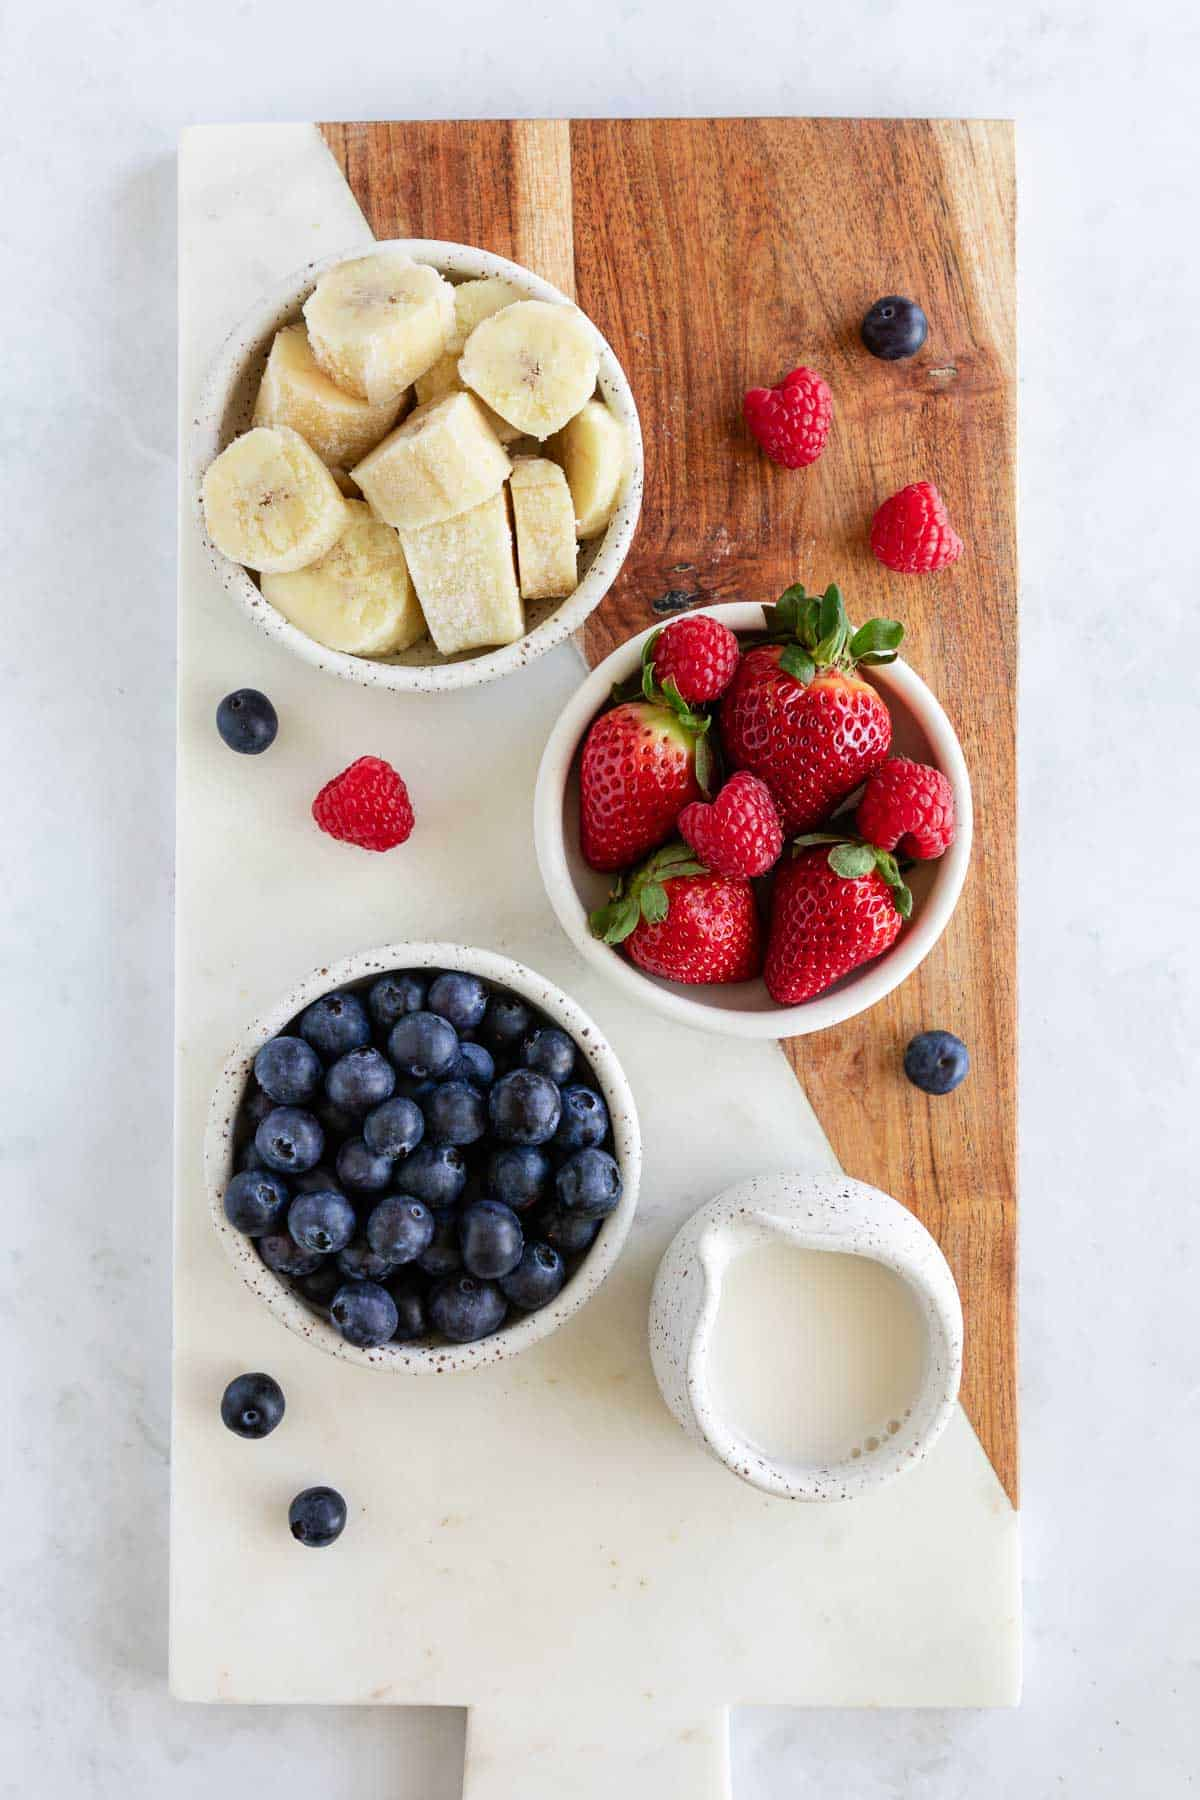 a marble and wood serving board topped with small ceramic bowls filled with frozen bananas, strawberries, blueberries, and almond milk